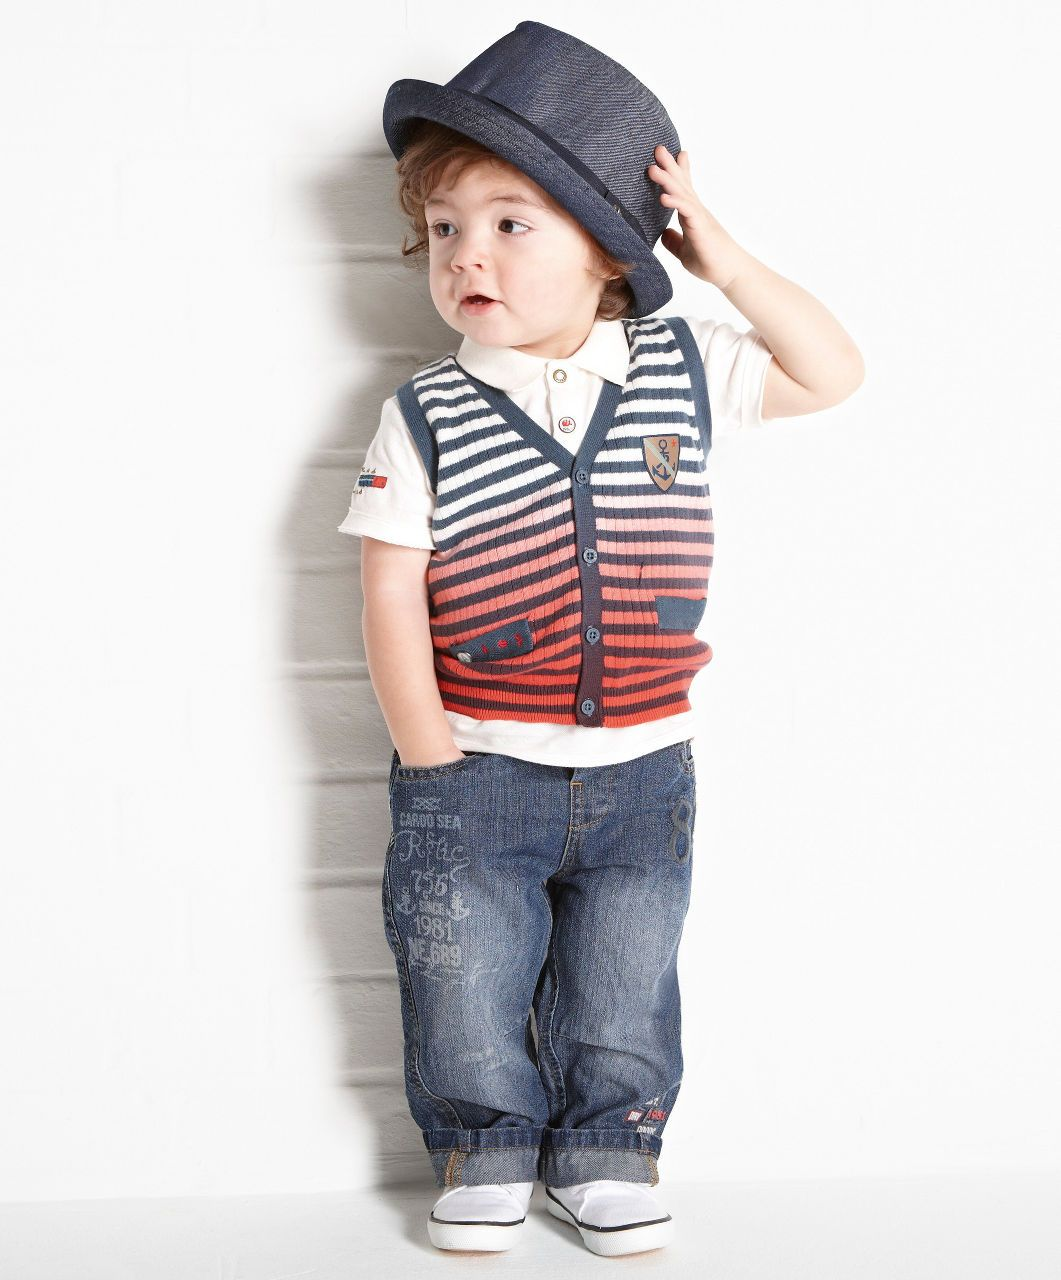 Pin by Tasha ♥️ on Babies, Toddle, Kids  Boys clothes style